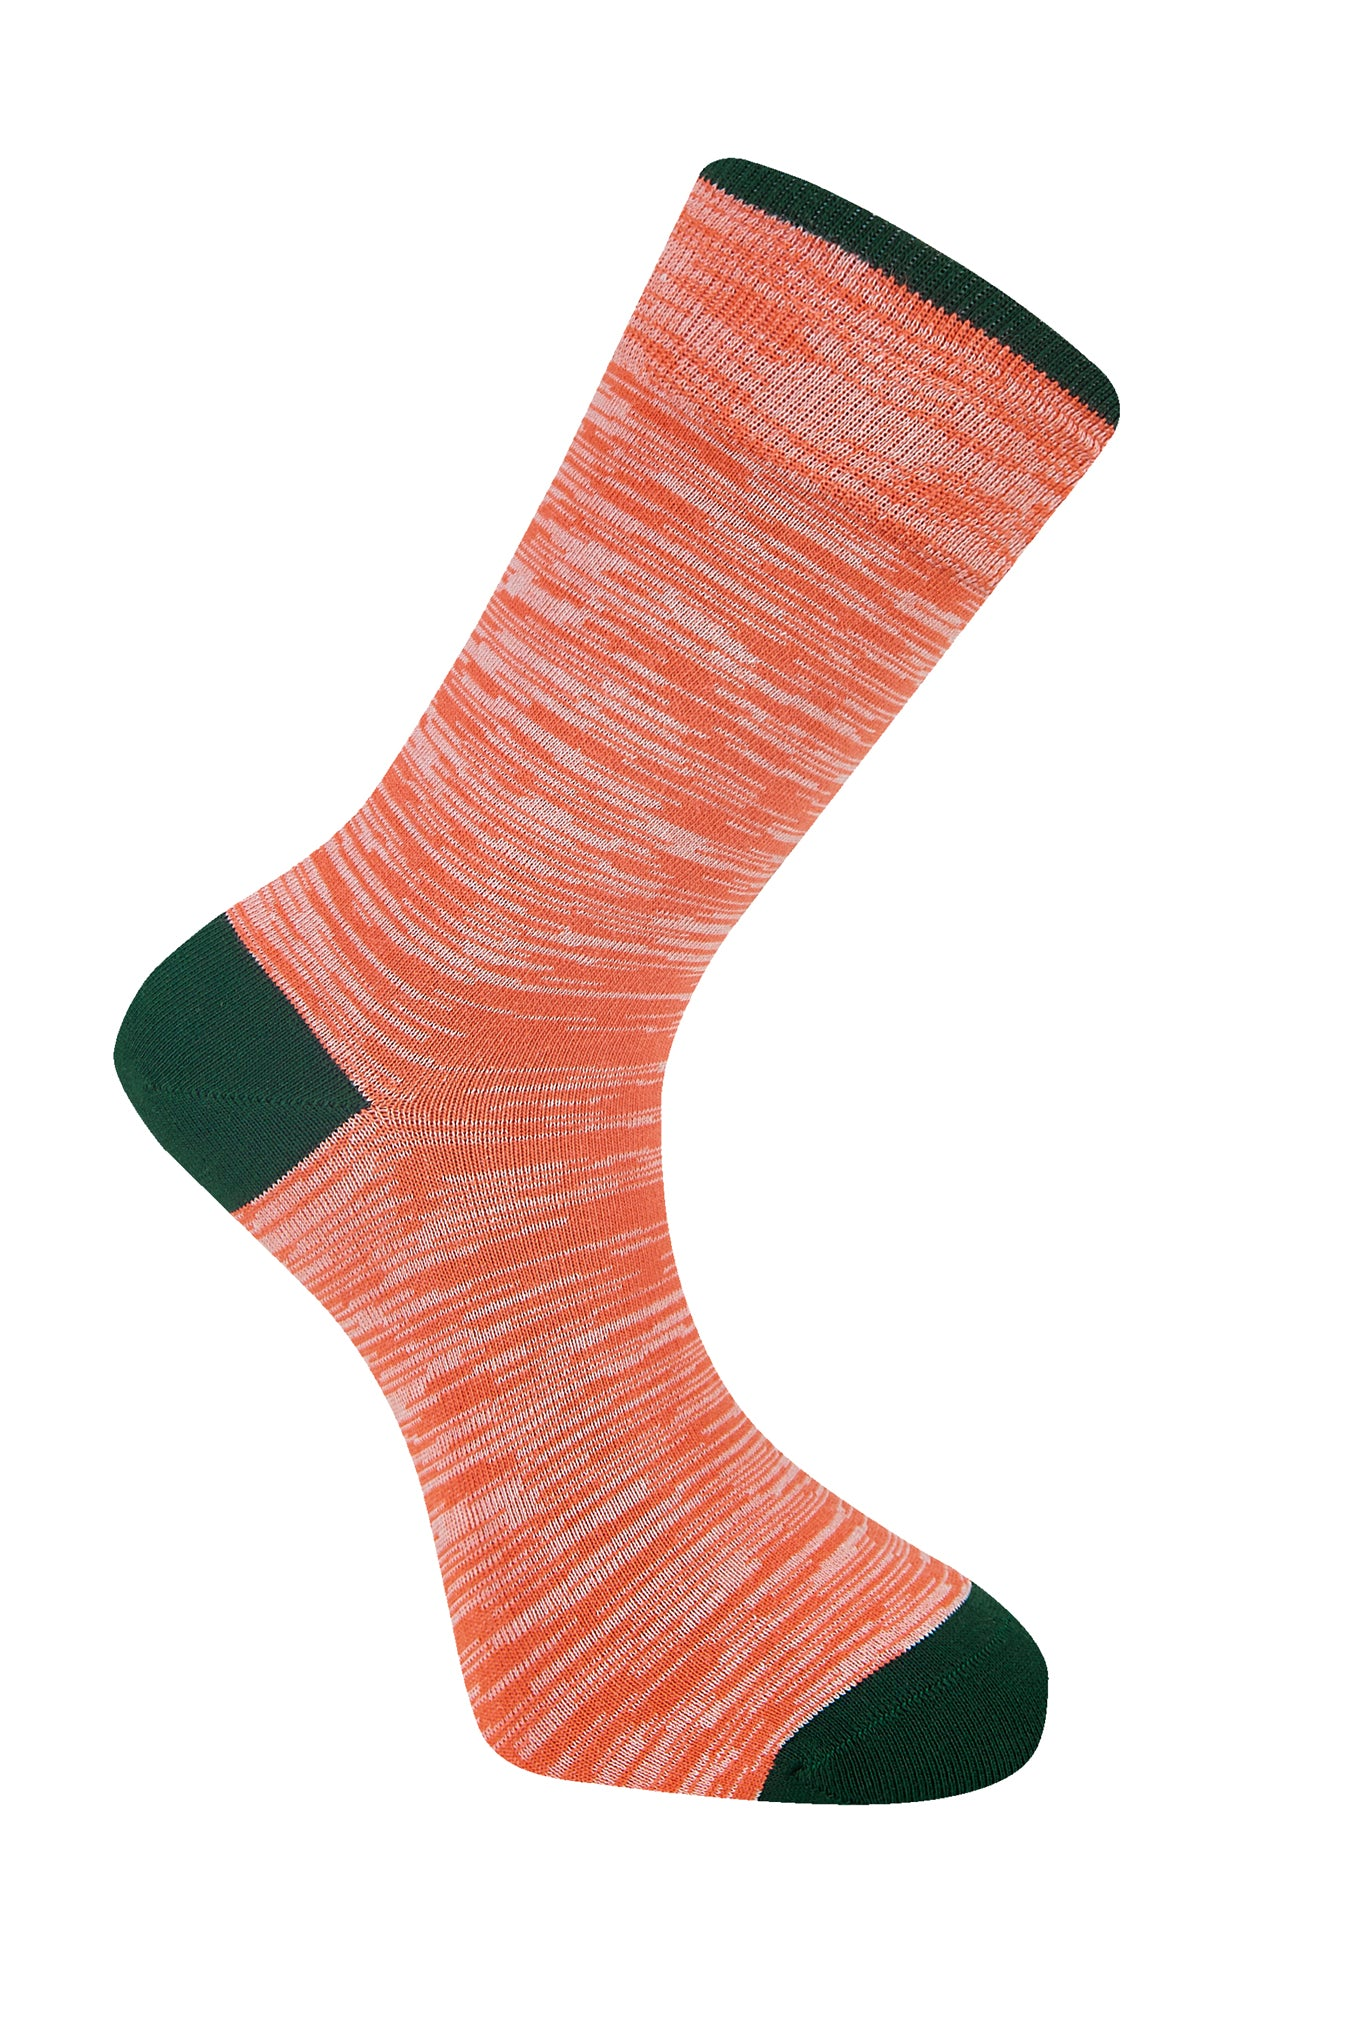 Space Dye Coral Organic Cotton Socks